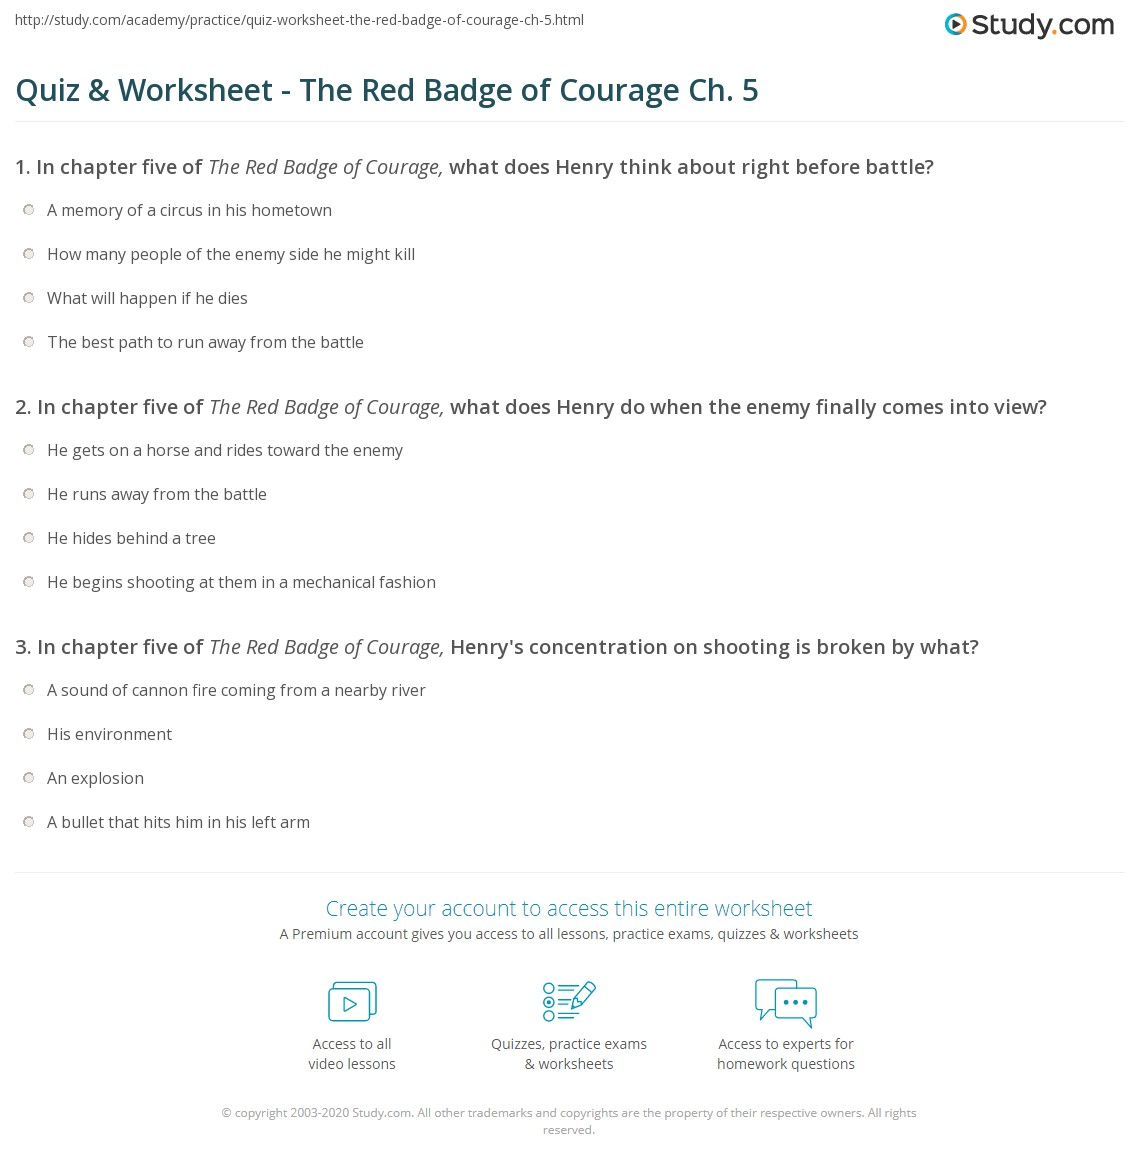 The Red Badge Of Courage Essay The Red Badge Of Courage Wikipedia  Red Badge Of Courage Summary Essay Essay Quiz Worksheet The Red Badge Of  Courage Ch Study Buy A Presentation also Universal Health Care Essay  Essays On Science And Technology